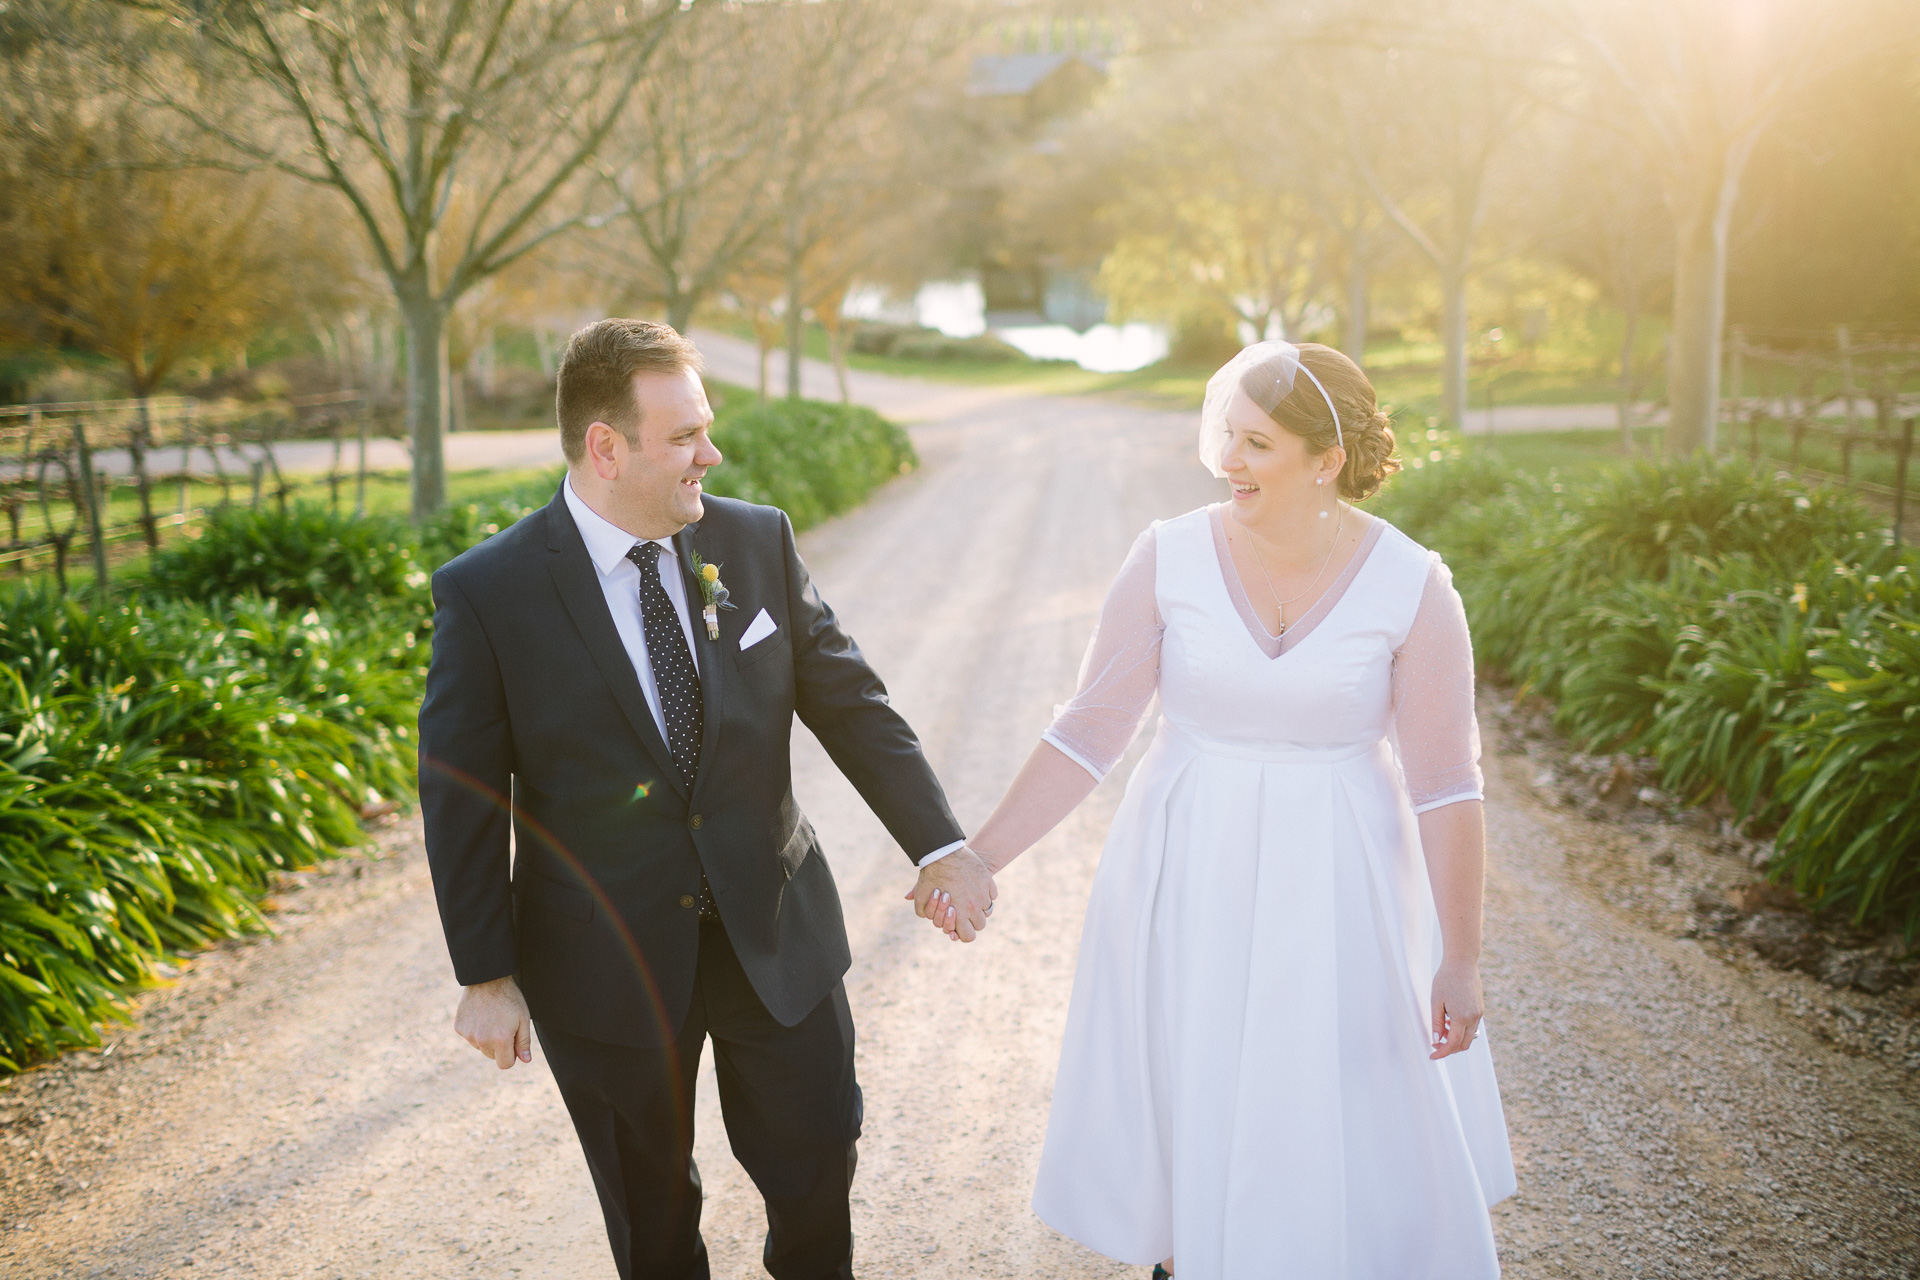 Happy bride and groom at their wedding at K1 winery, walking hand in hand along backlit tree lined driveway